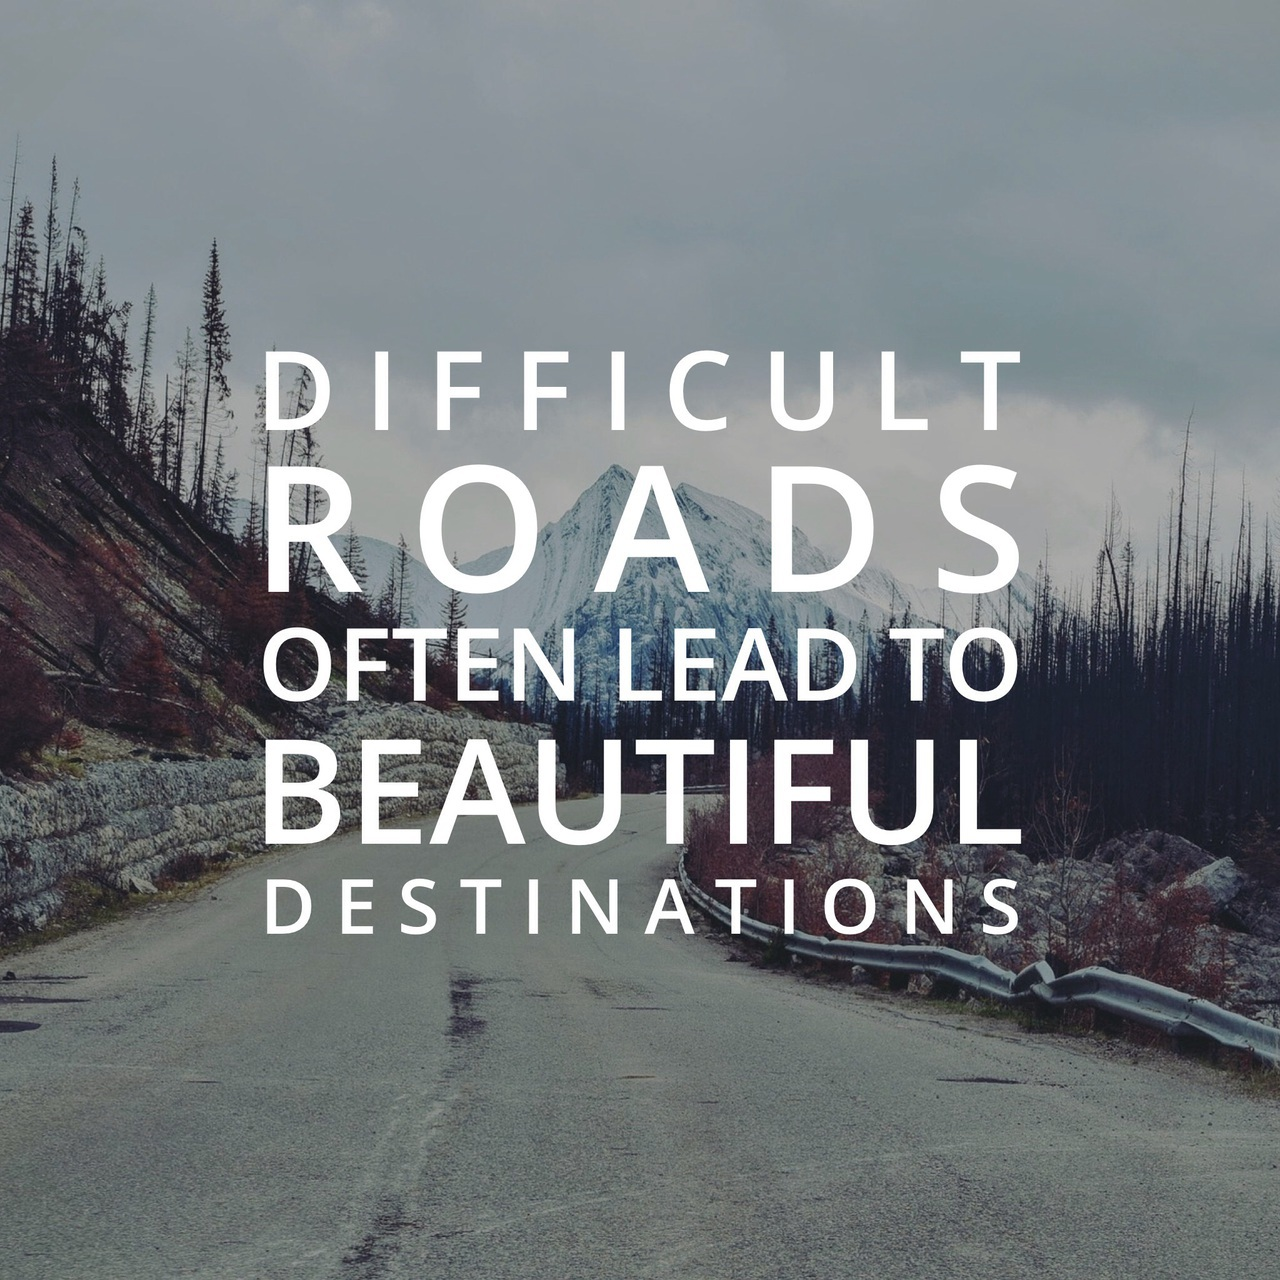 Difficult roads often lead to beautiful destinations | via ...